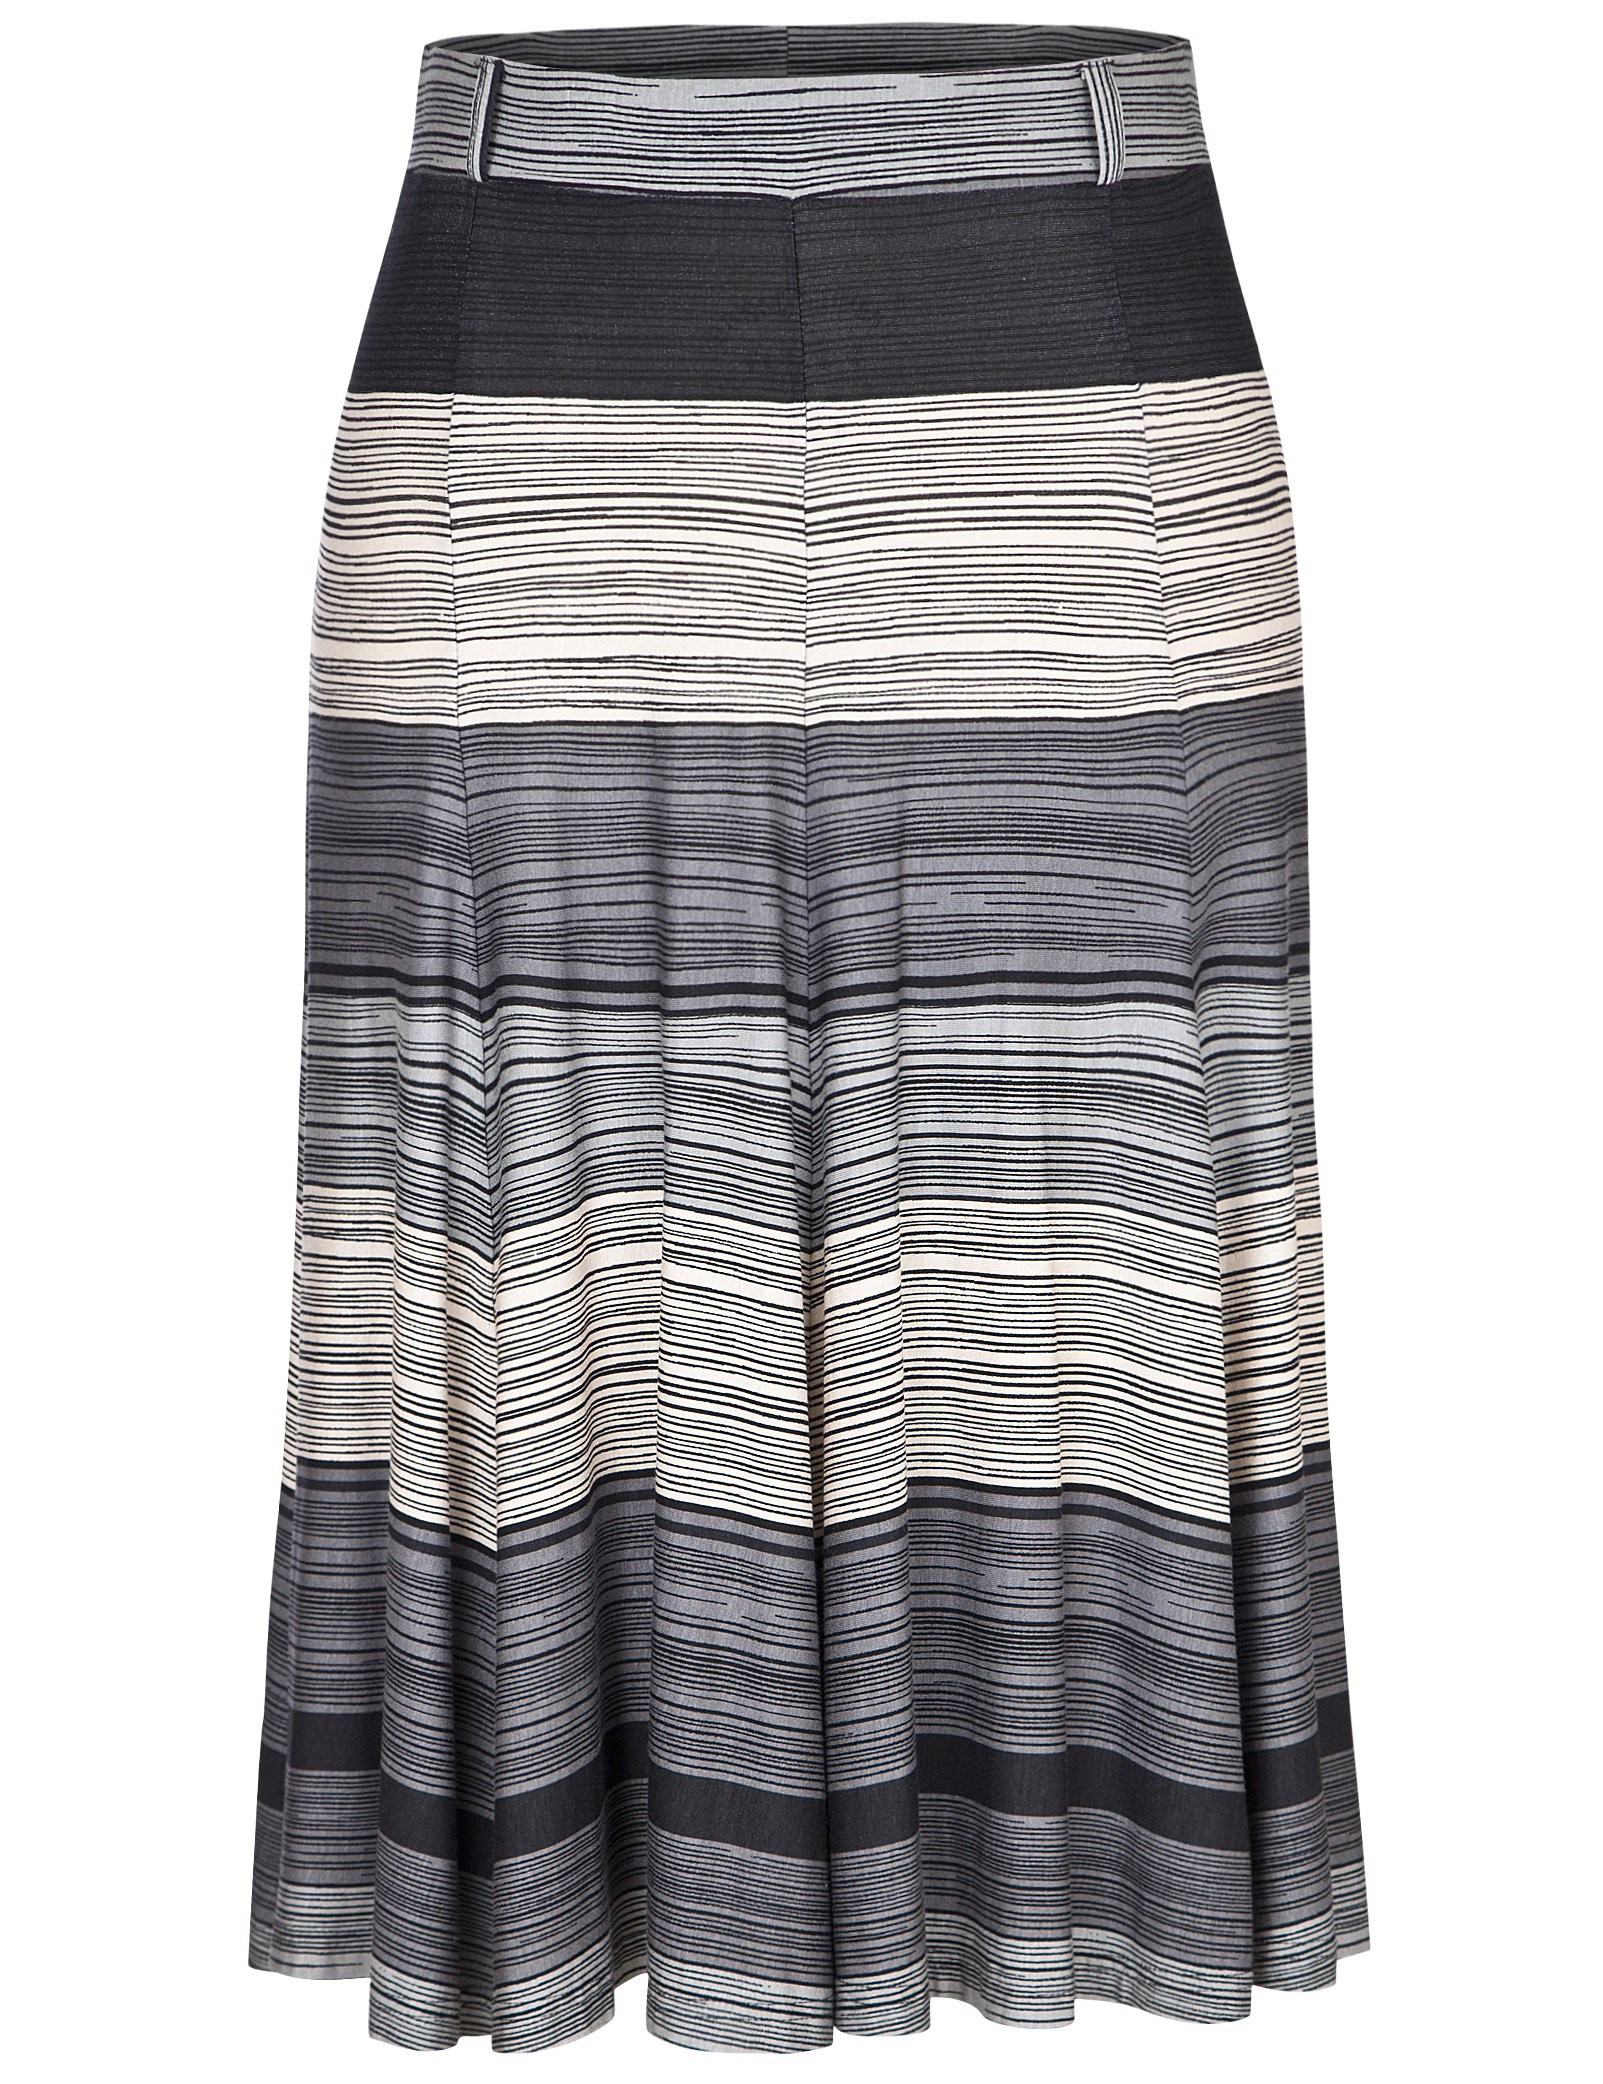 Chicwe Women's Plus Size A Line Flared Knee Long Skirt with Stretch Waistband 20